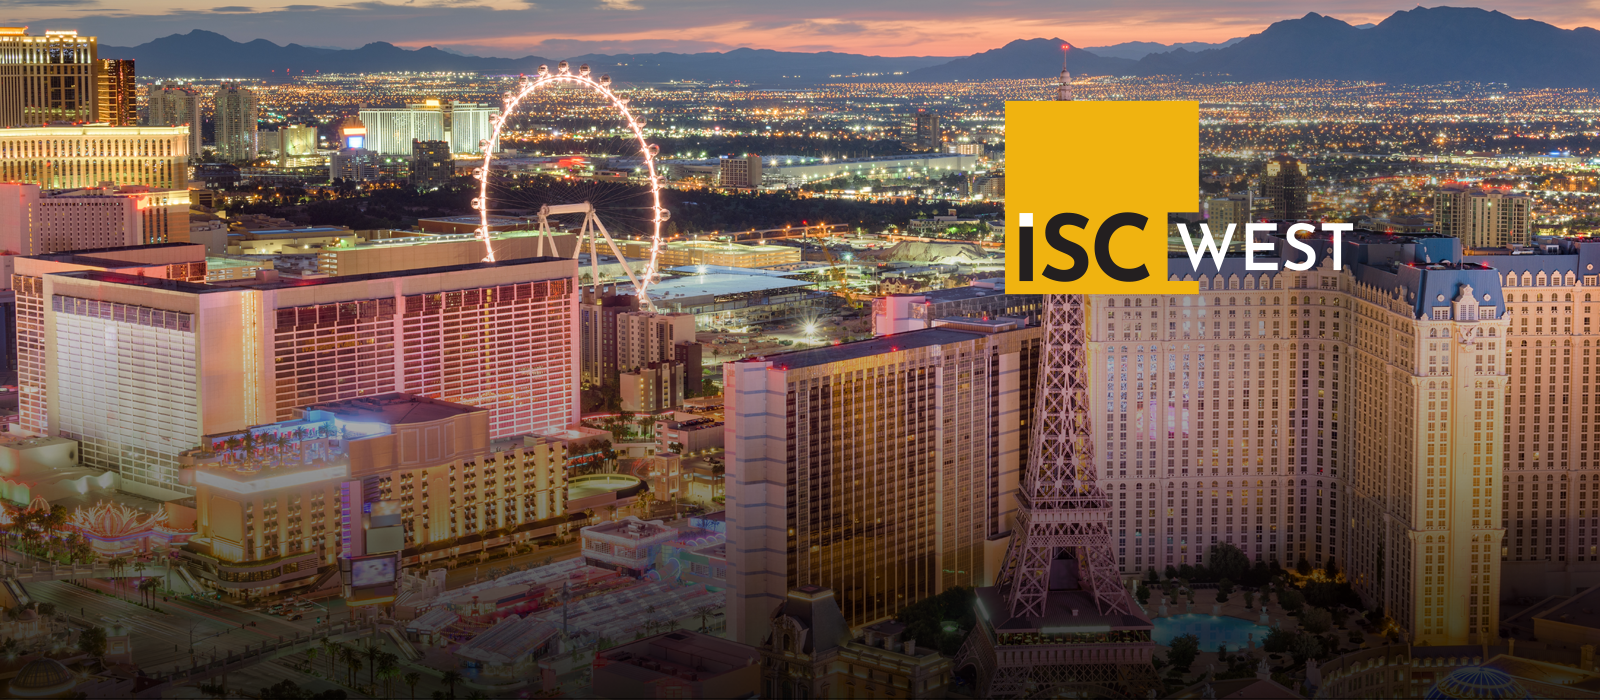 Visit Us at ISC WEST 2020 Booth #8045<br />March 18-20 Sands Expo, Las Vegas, NV